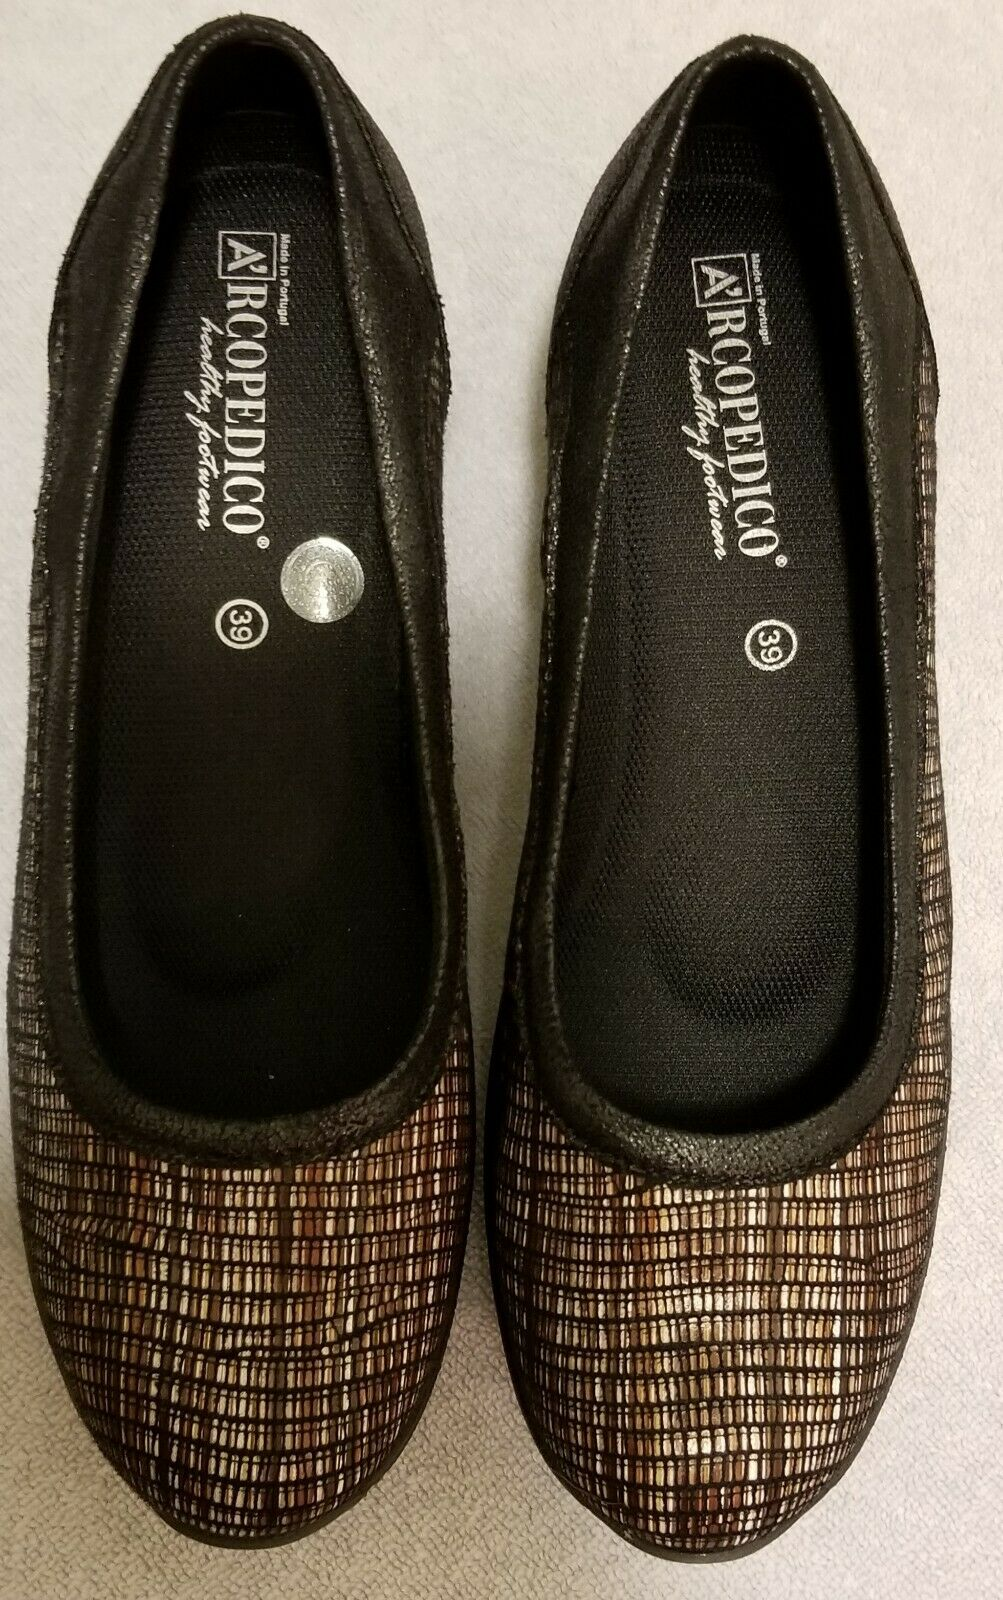 New Arcopedico R10 Vegan-Friendly Black Flats shoes 4183 Sz EU 39 US 8 - 8.5